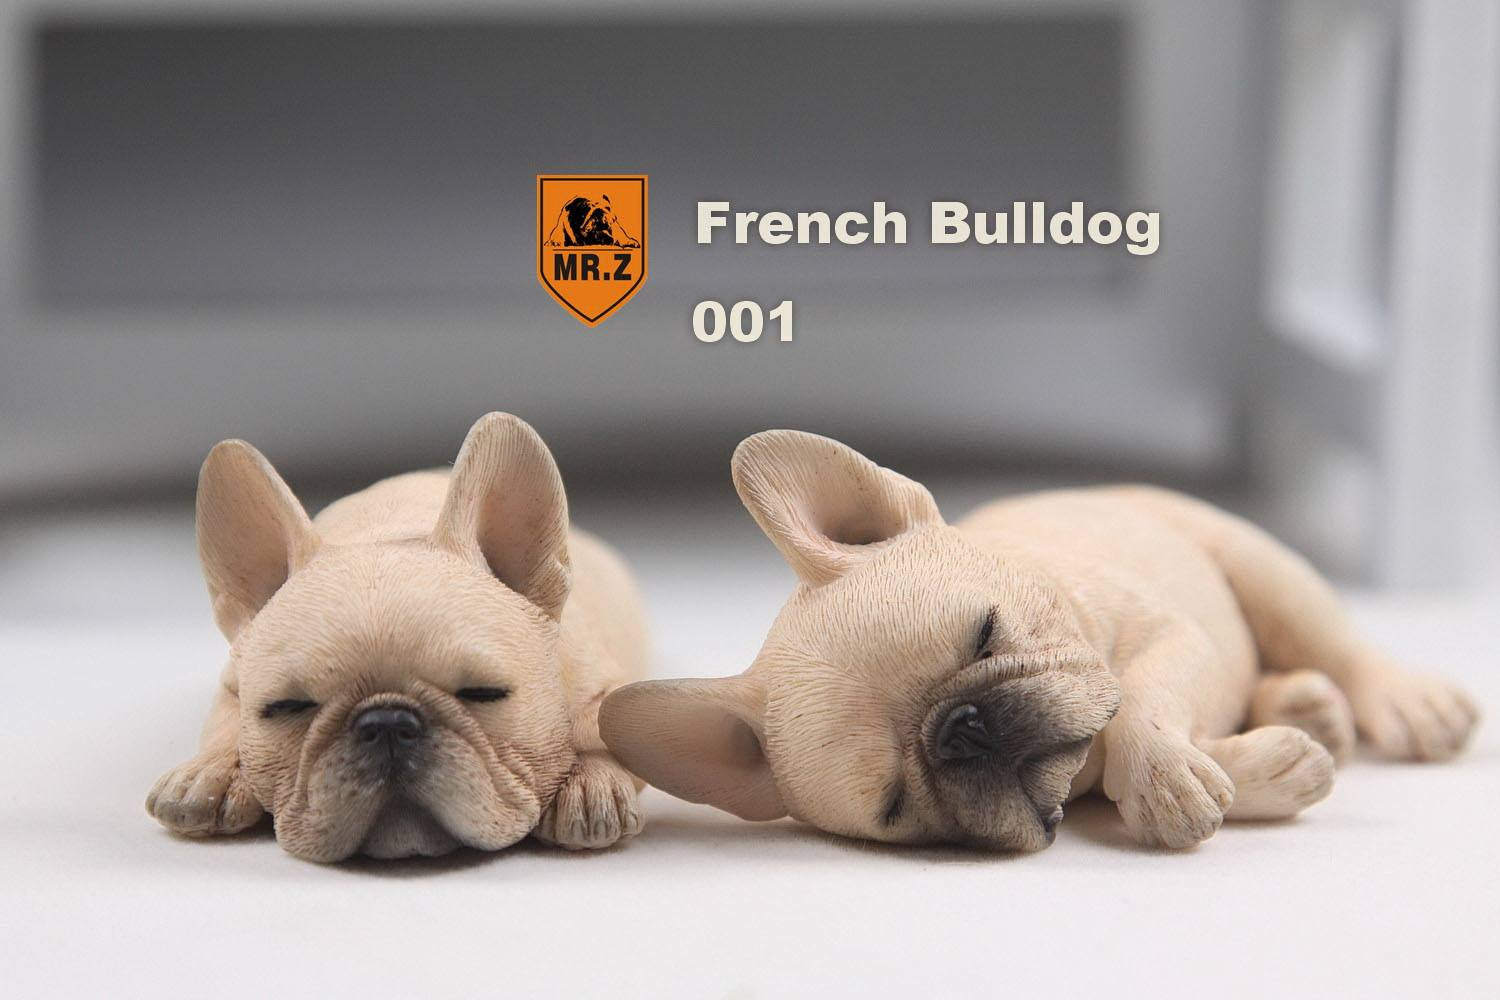 MR.Z - Real Animal Series No.9 - 1/6th Scale French Bulldog (Sleep Mode) 001-005 - Marvelous Toys - 5